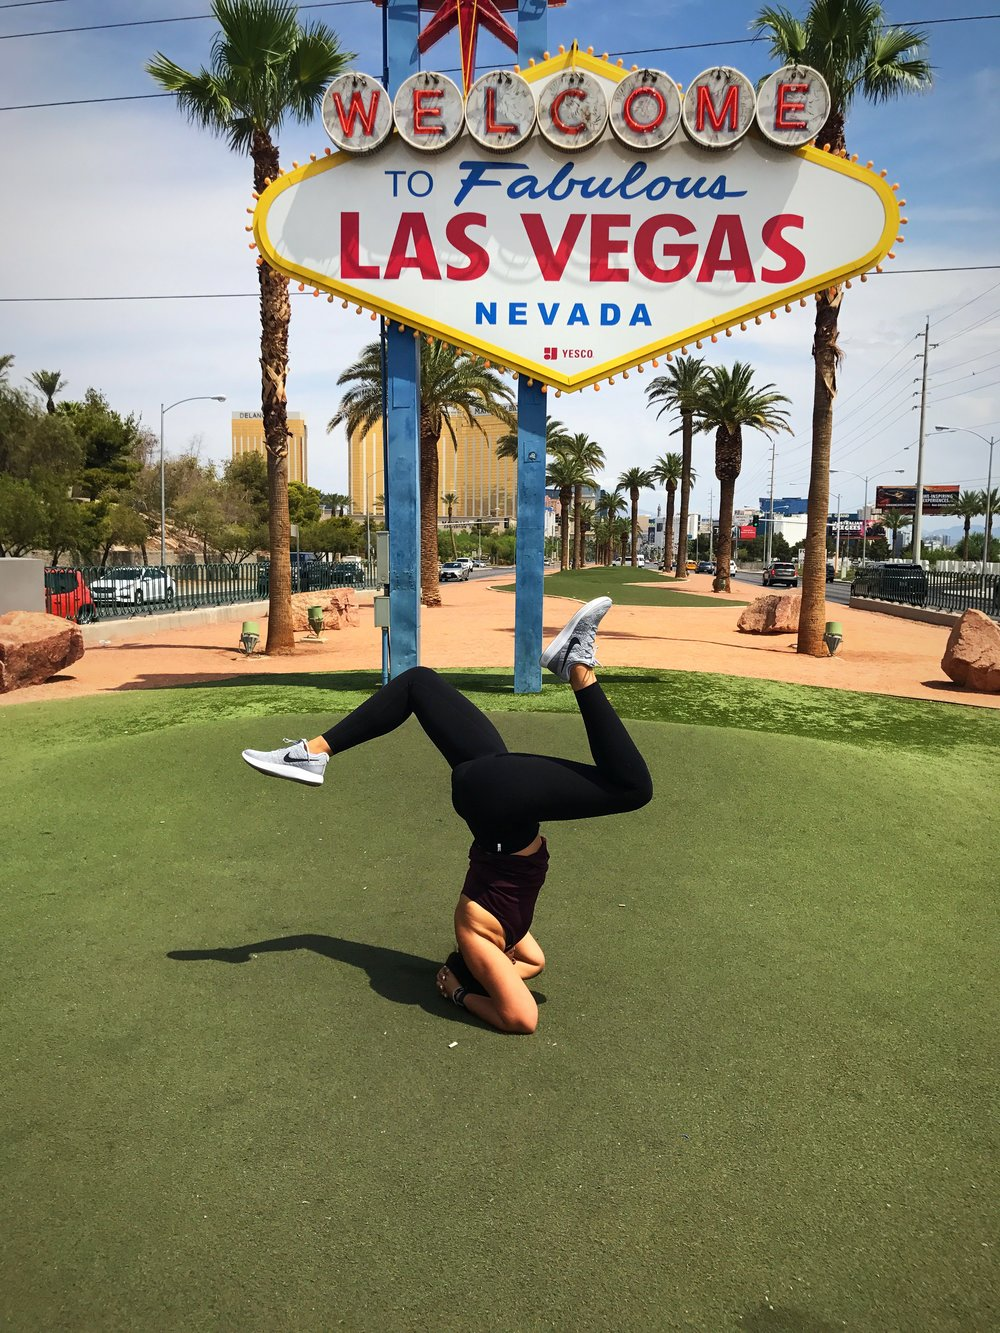 6 WAYS TO STAY HEALTHY ON A VEGAS TRIP